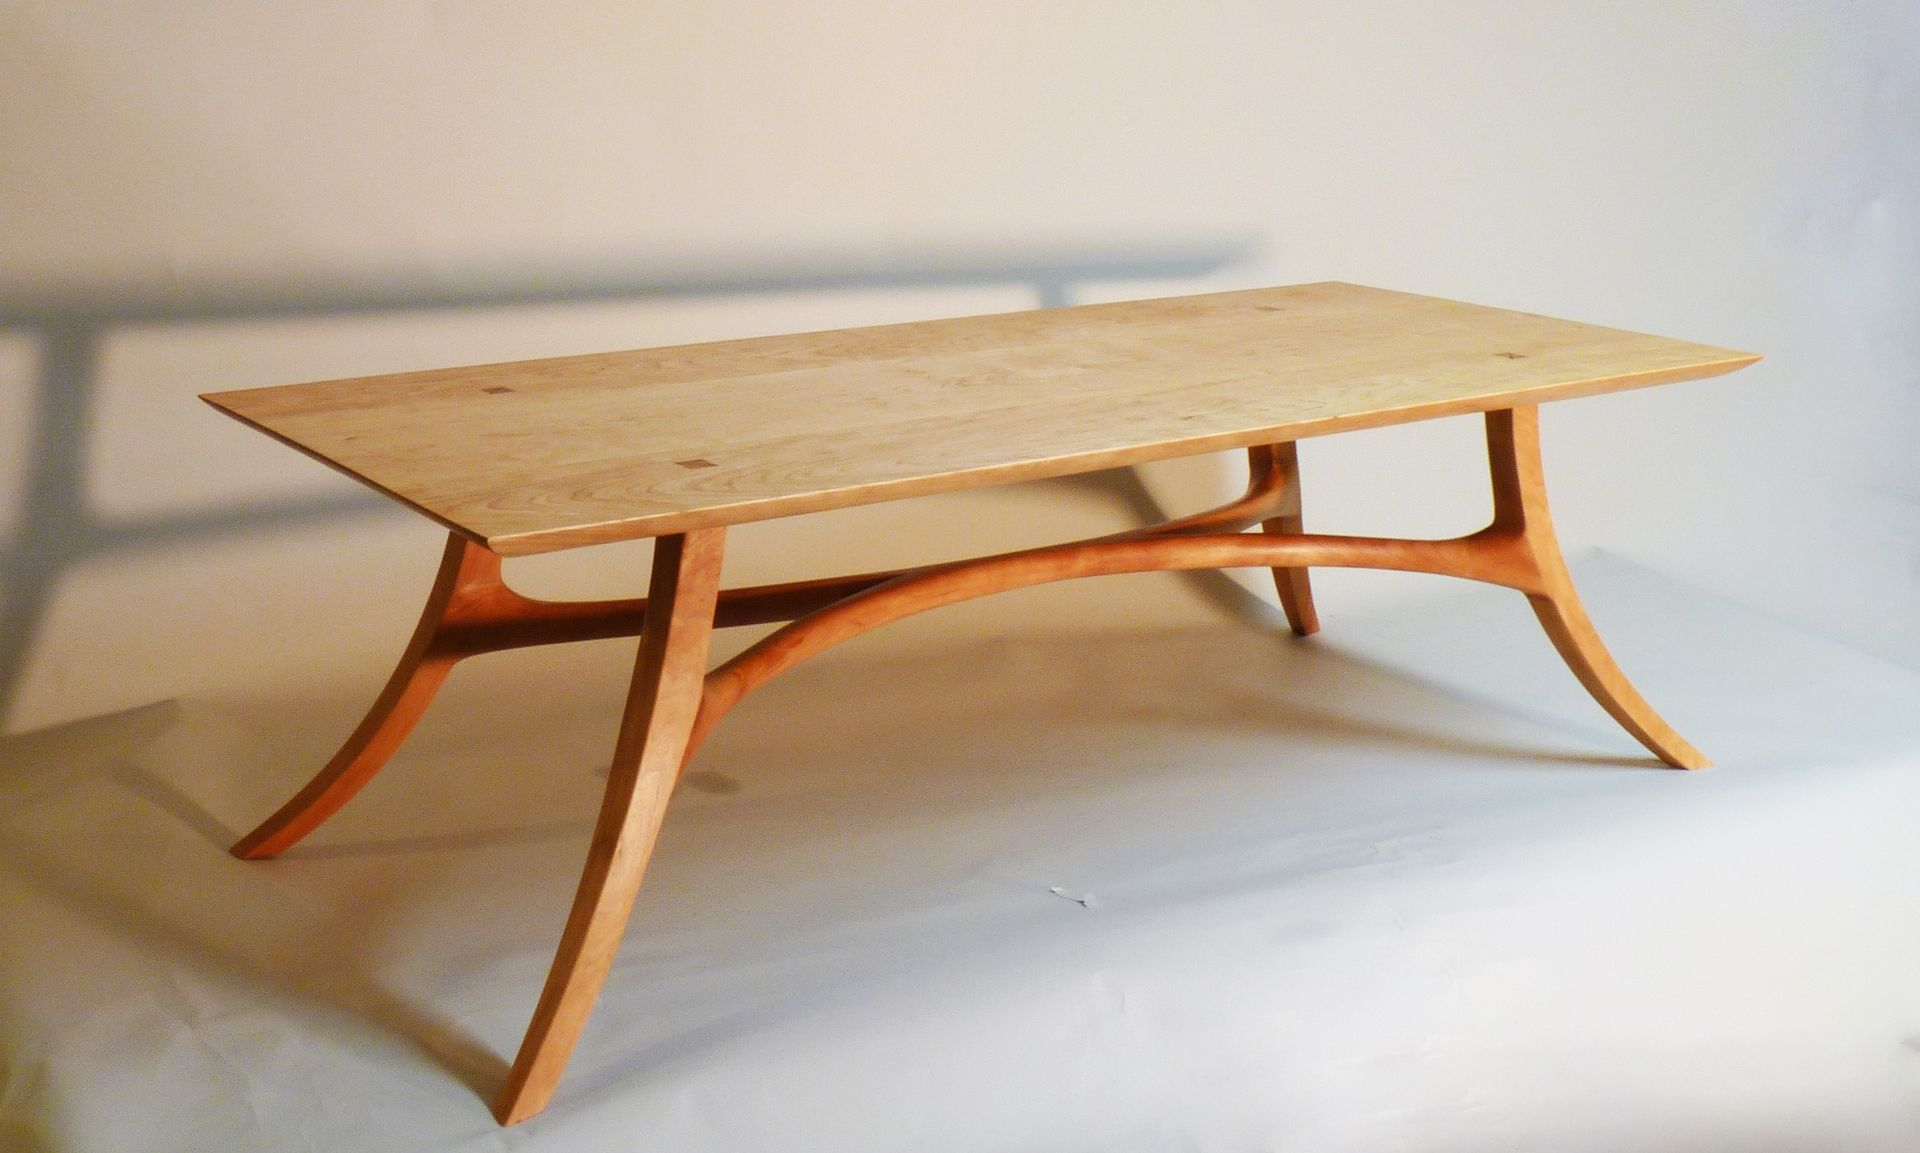 Handmade Sam Maloof Inspired Cocktail Table By J Blok